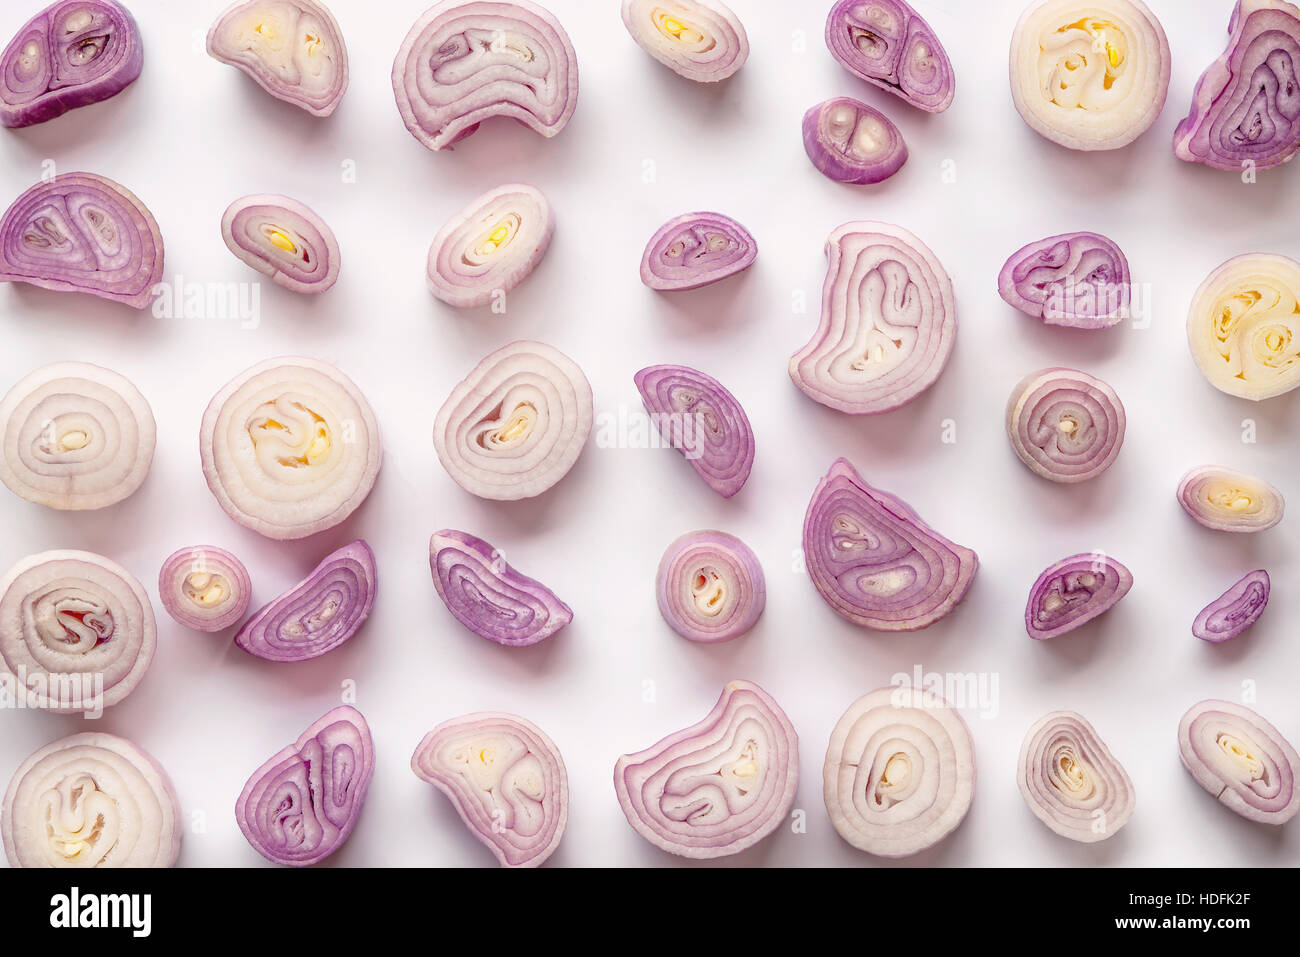 shallot onion vegetable ingredient aroma aromatic - Stock Image